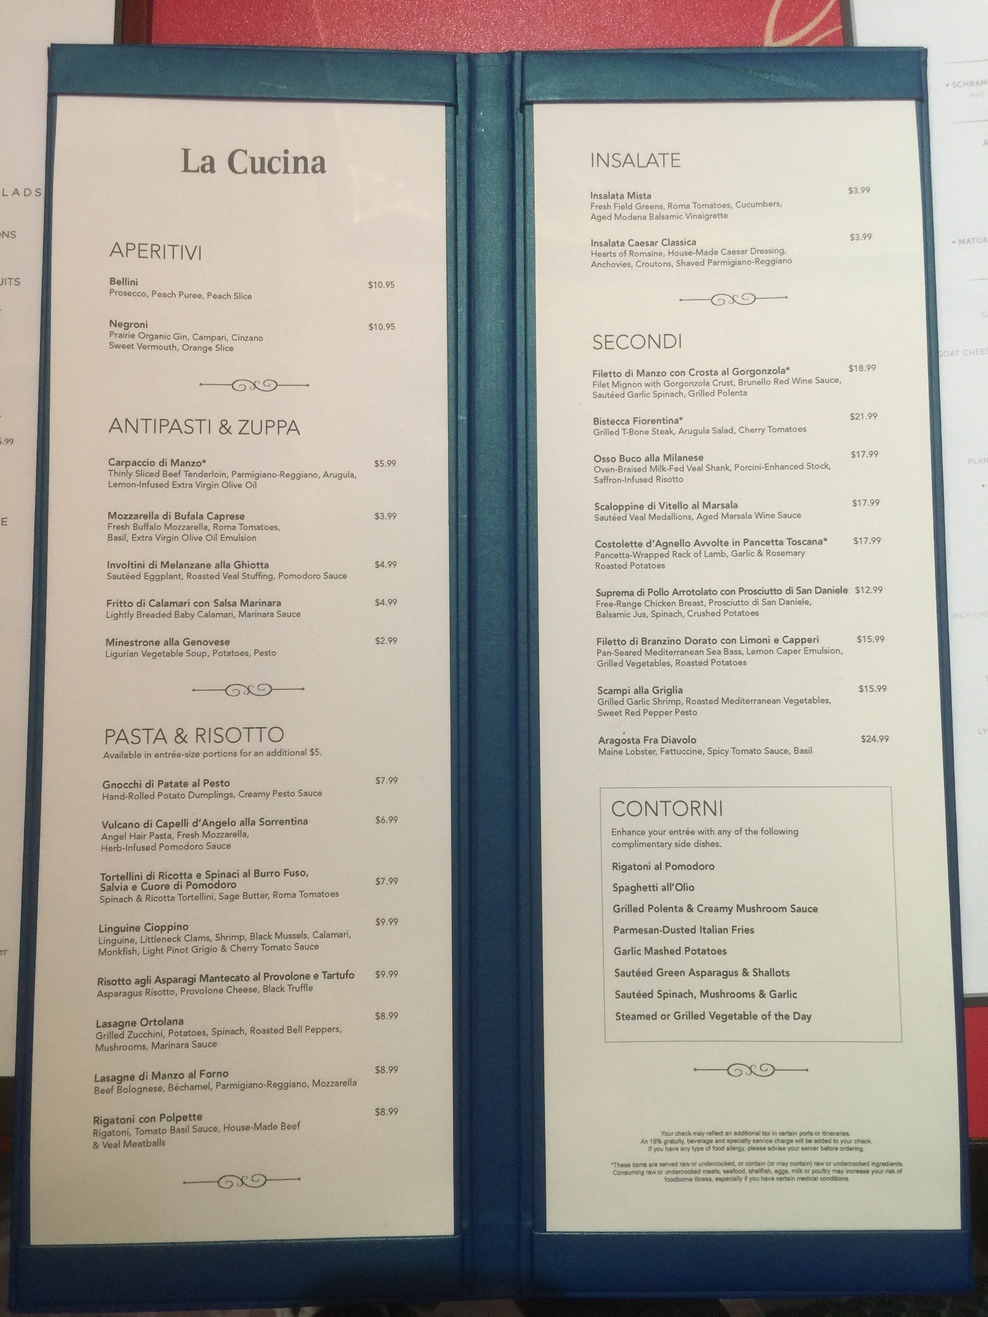 Restaurant bar lounge food on norwegian breakaway for Menu cucina